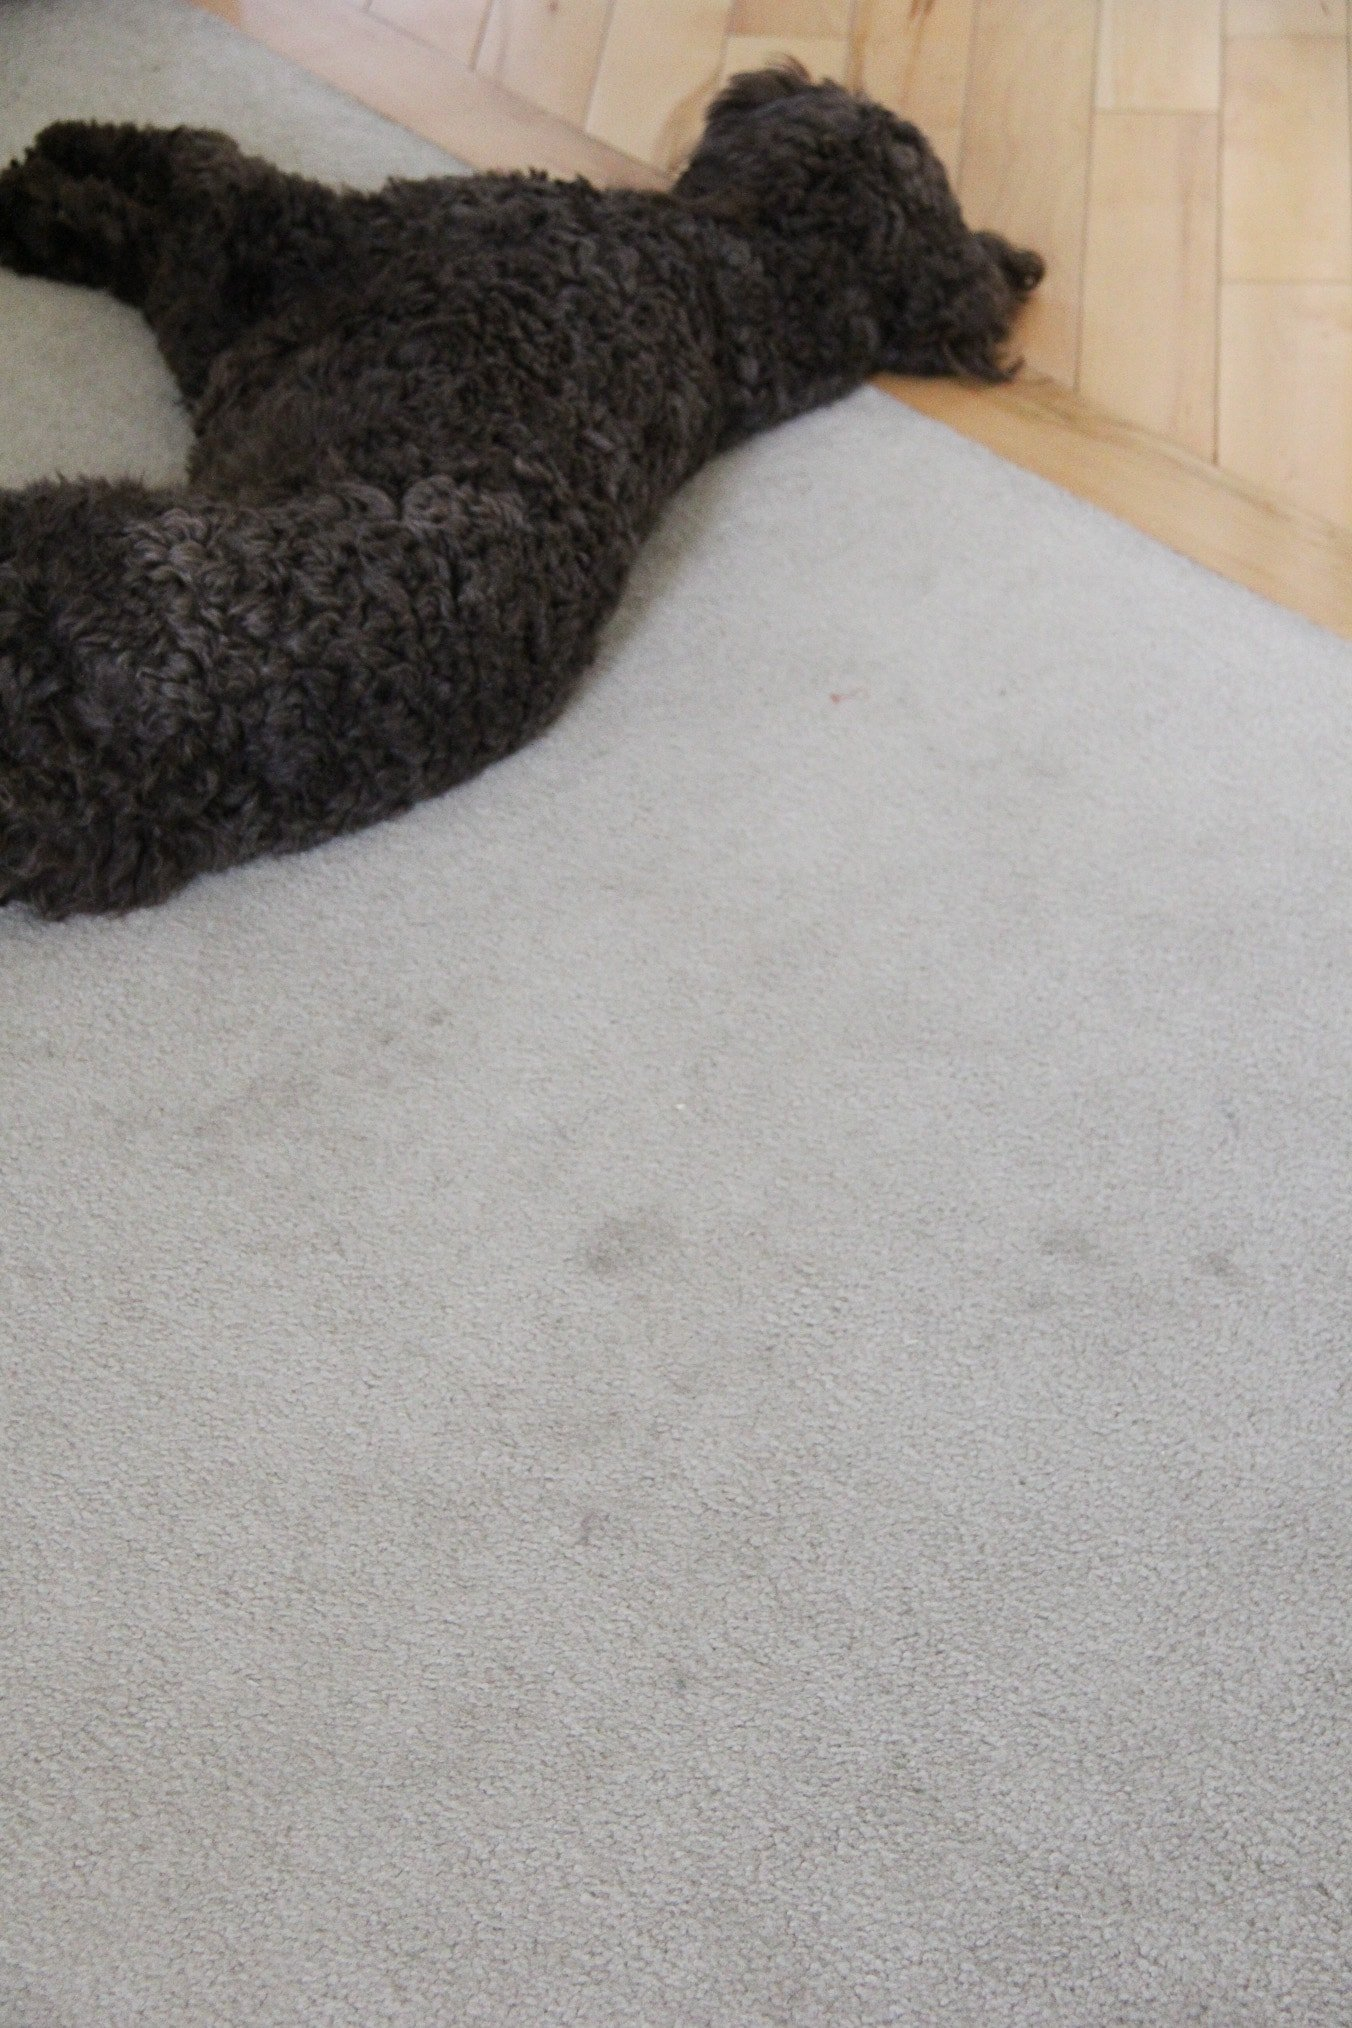 Product Review: Hoover Power Scrub Elite Pet Carpet Cleaner